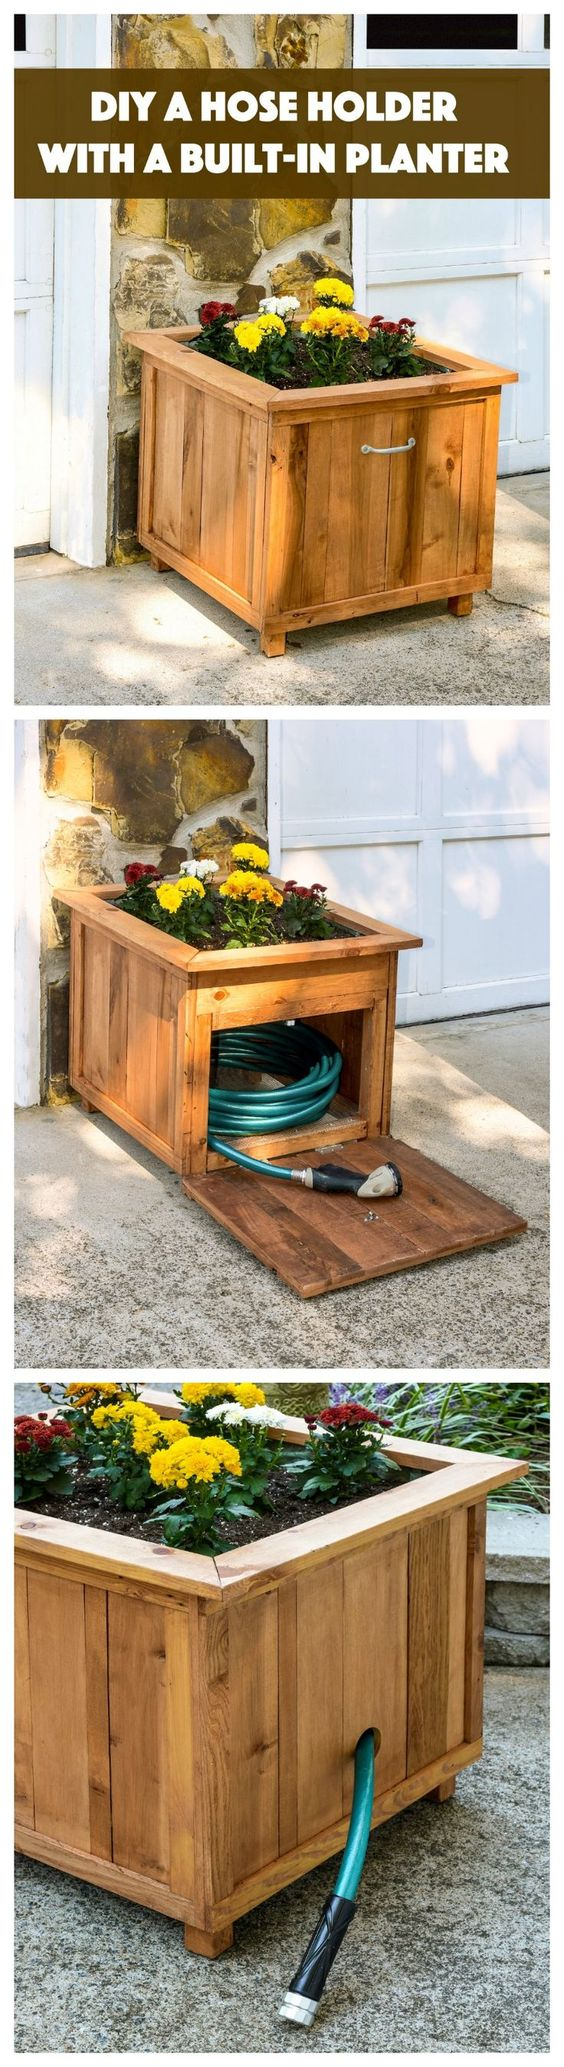 DIY Pallet Wood Hose Holder With A Planter Built In.